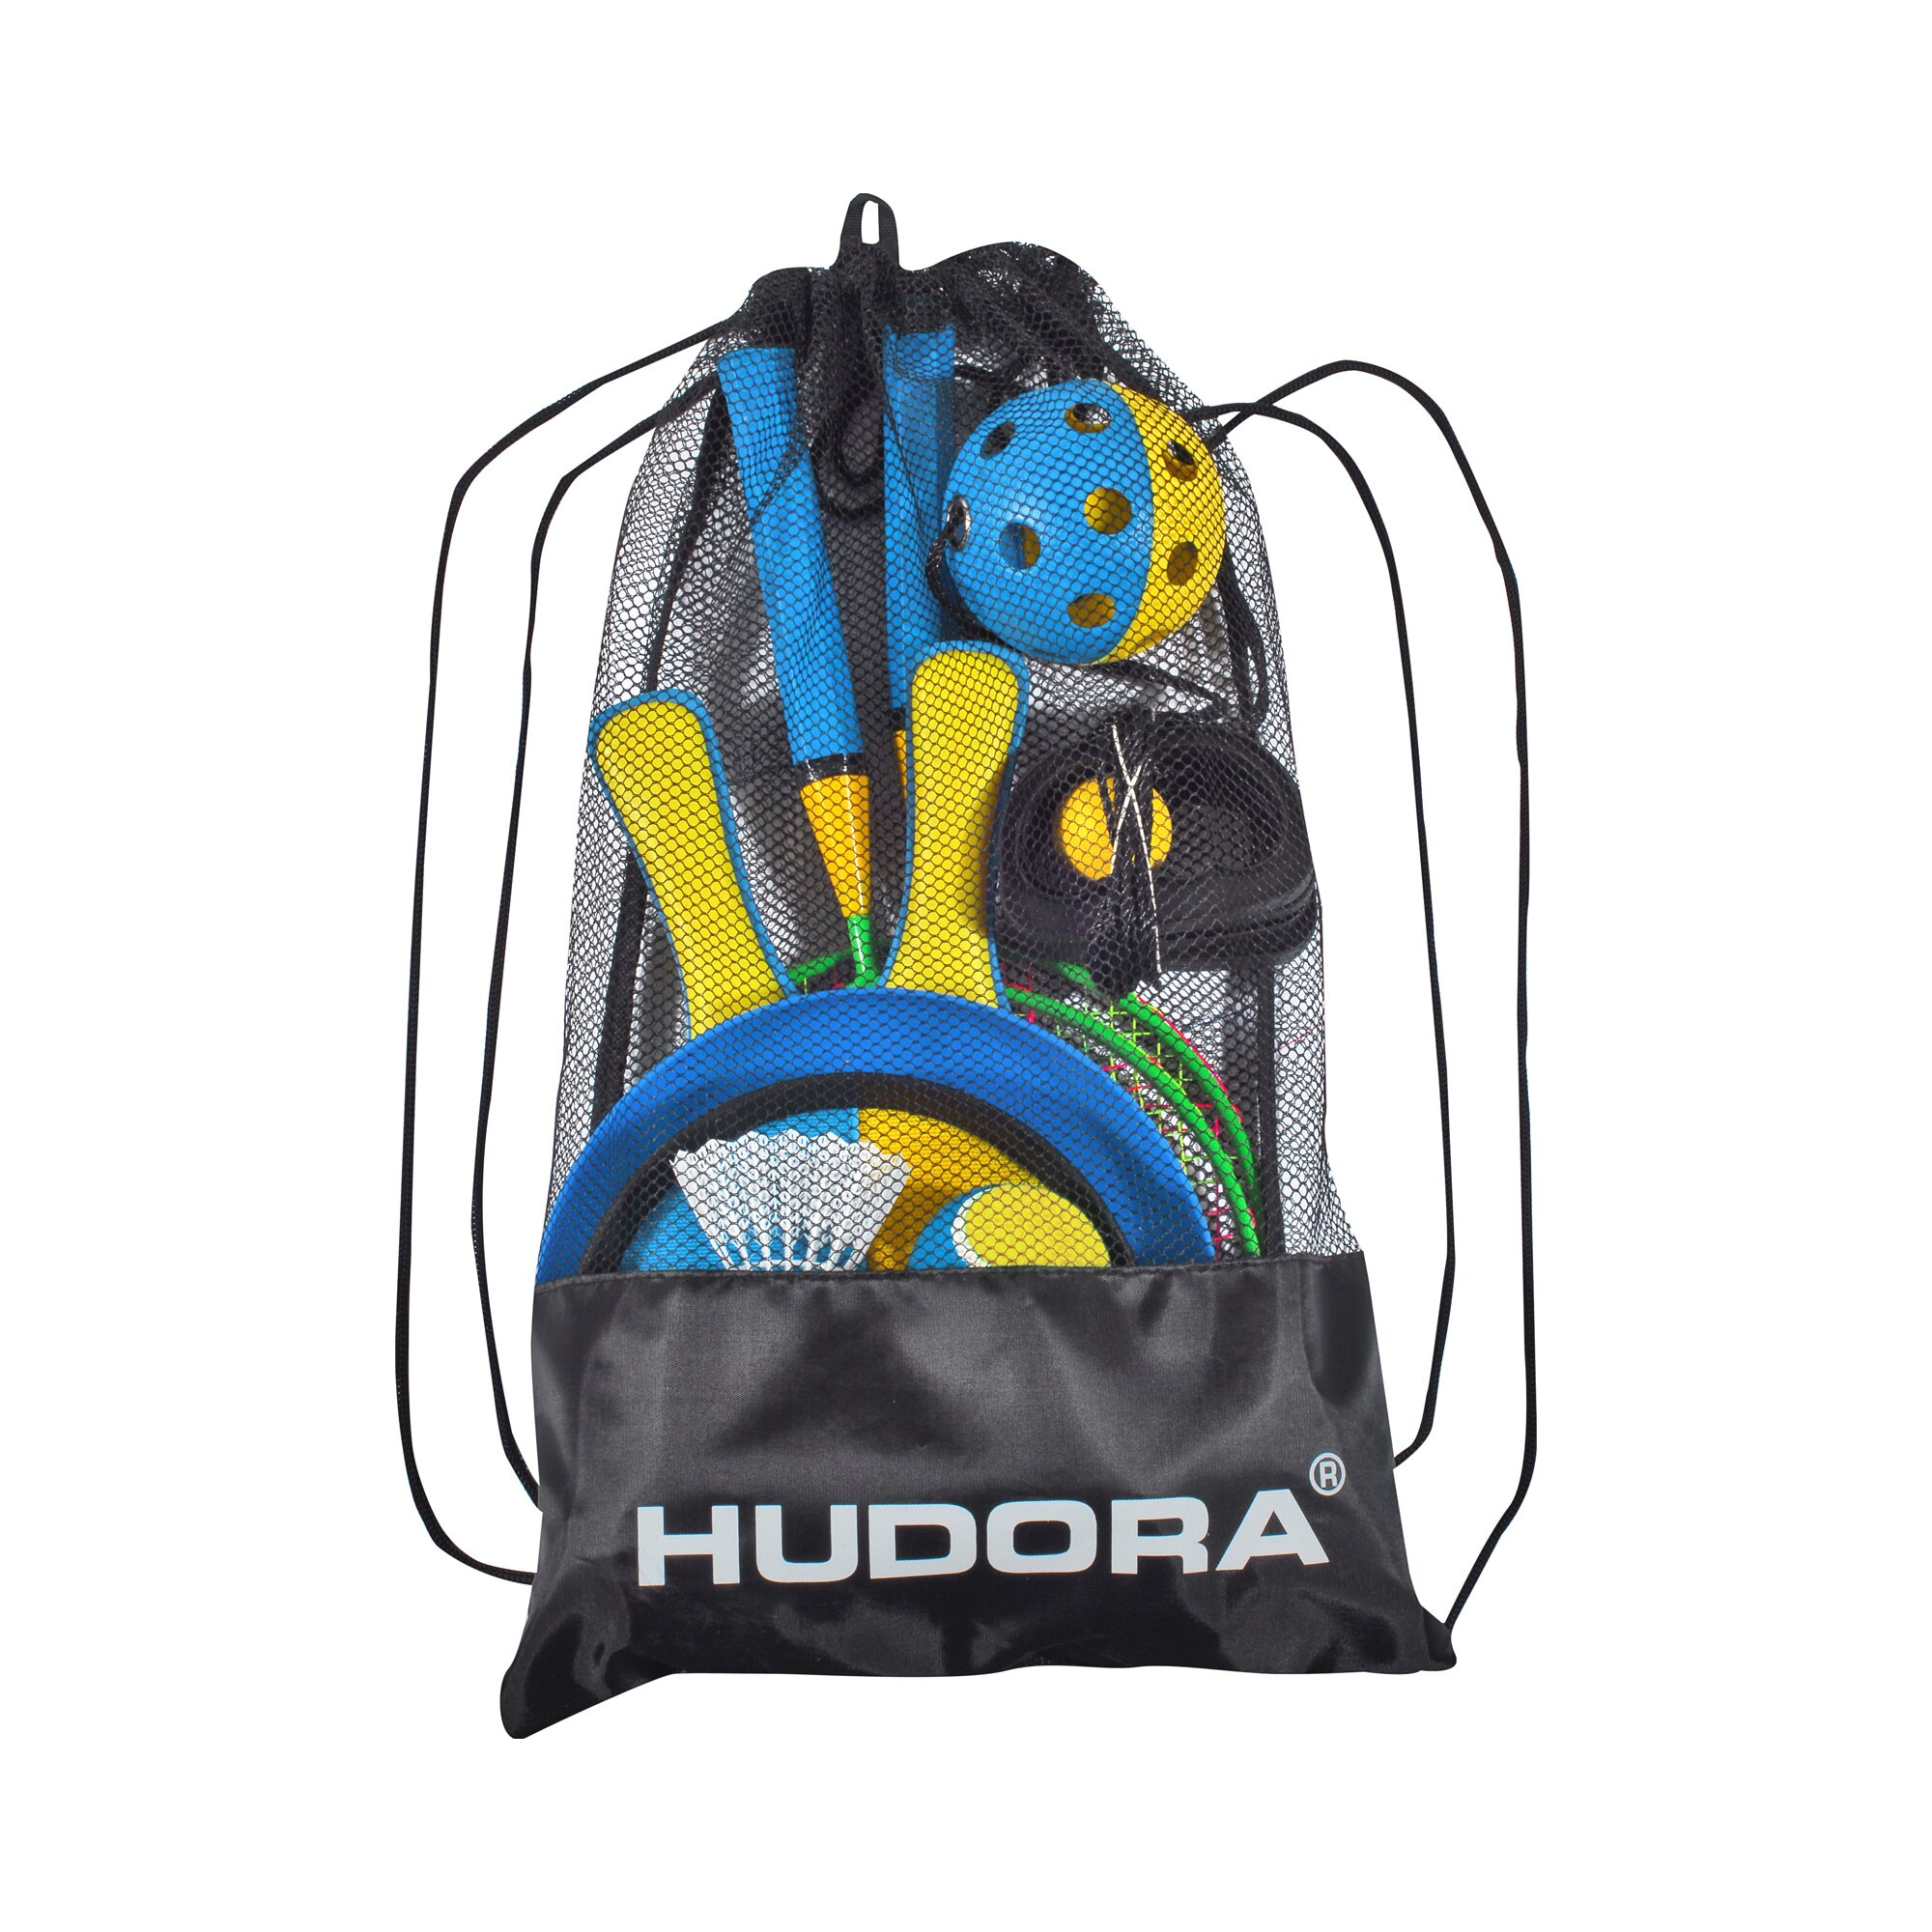 hudora-beach-set